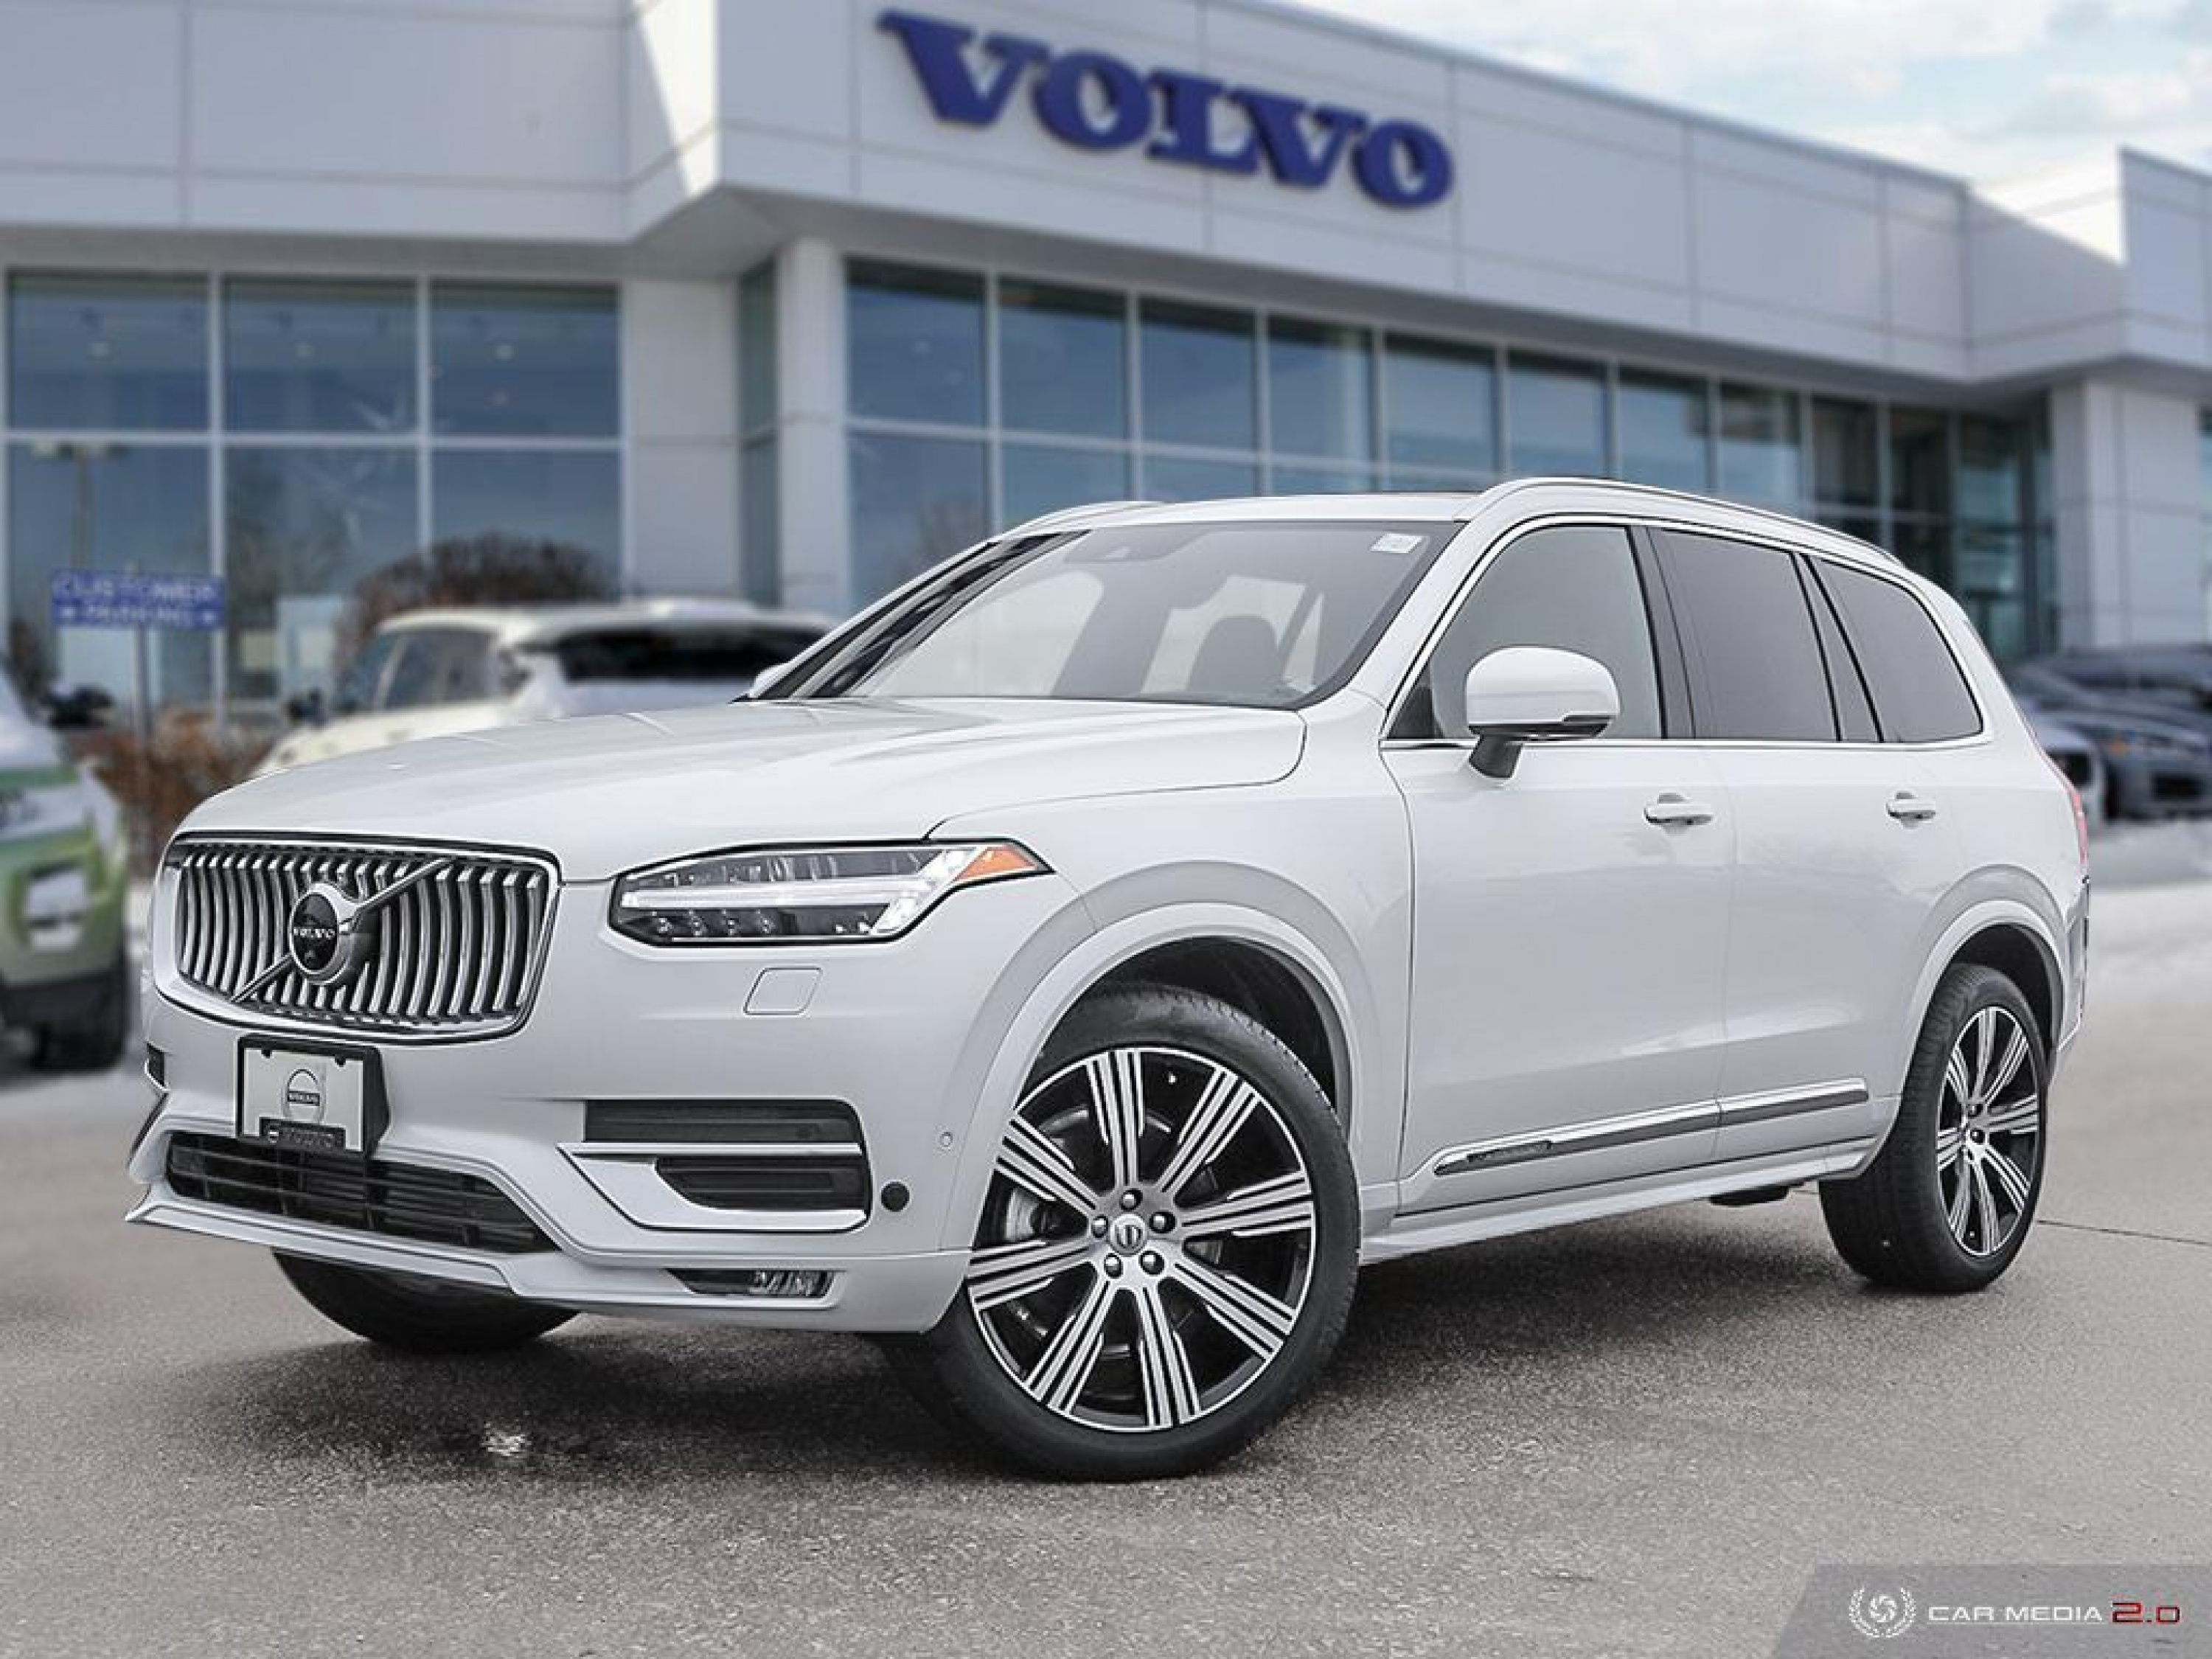 New 2020 Volvo XC90 Inscription | Elegant Scandinavian Design